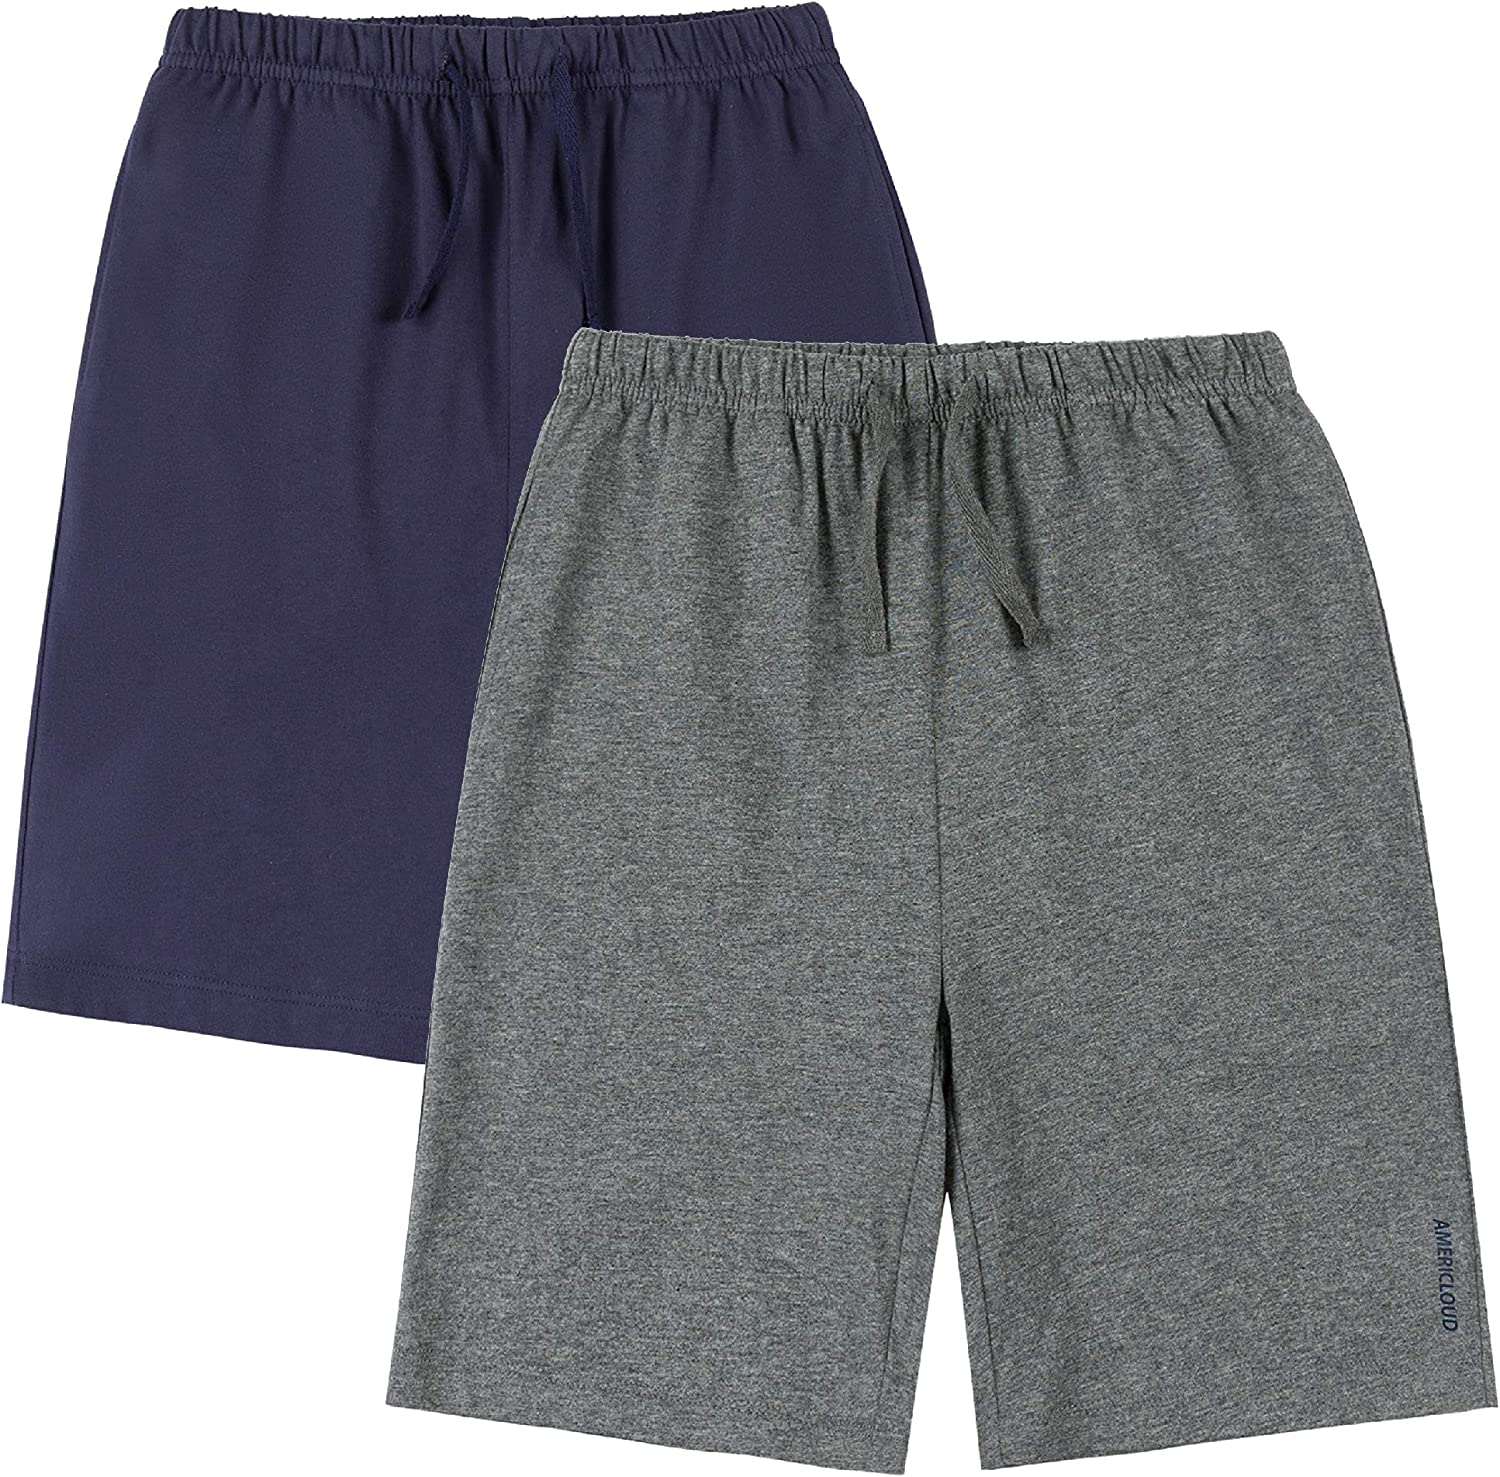 AMERICLOUD Kids 1 or 2 Pack Drawstring Cotton Shorts Soft Athletic Shorts with Pockets for Boys and Girls 3-12 Years